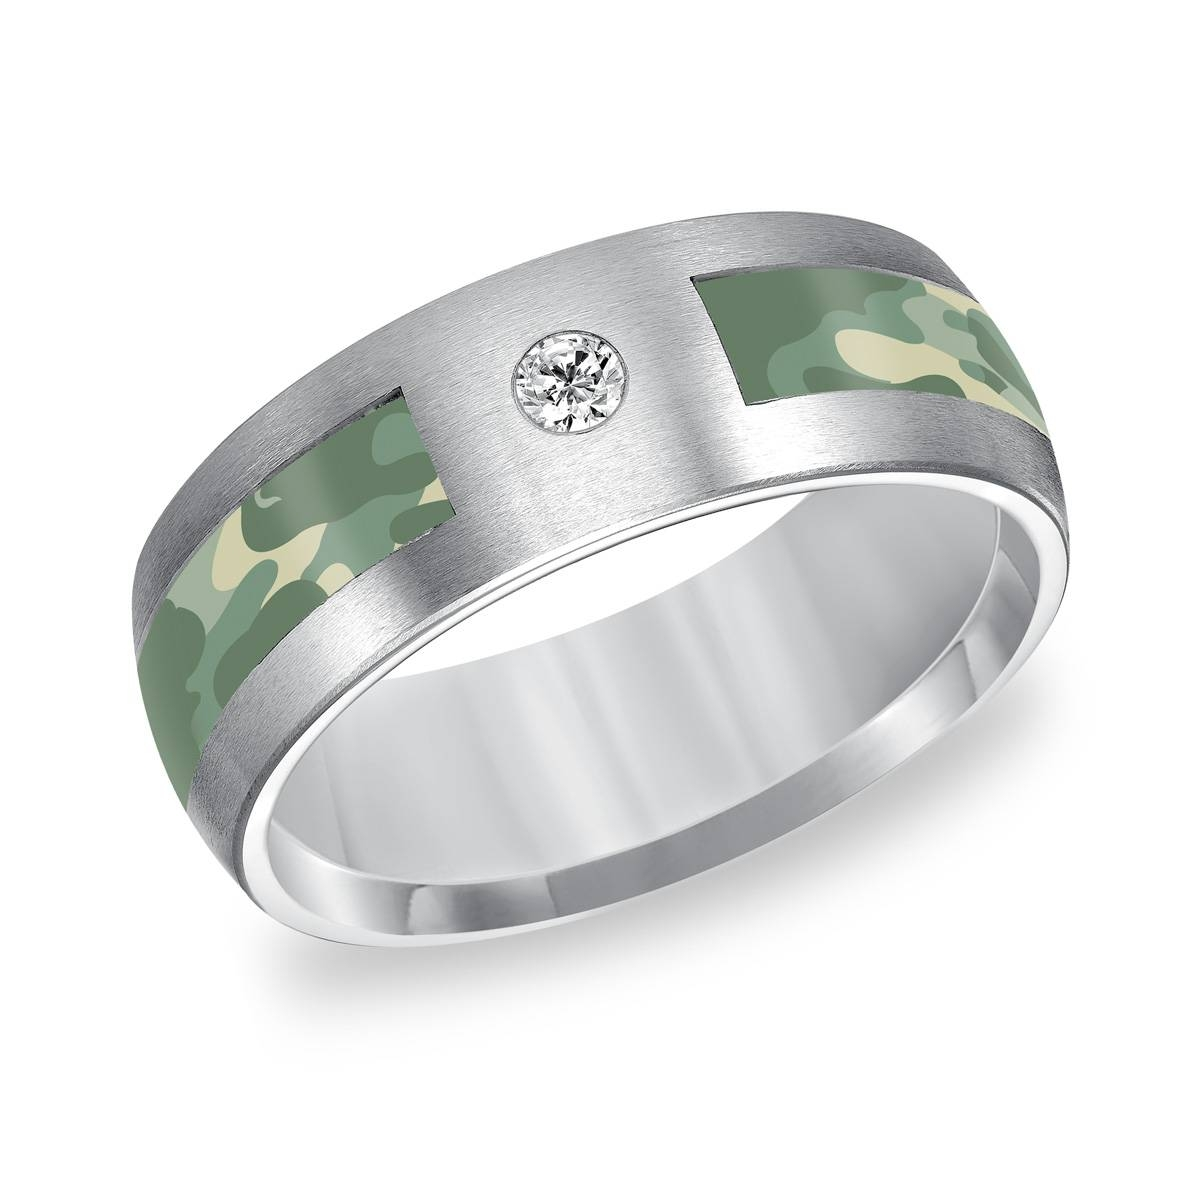 Triton Tungsten Carbide 8Mm Diamond Wedding Band With Green Within Jewelry Wedding Bands (Gallery 14 of 15)